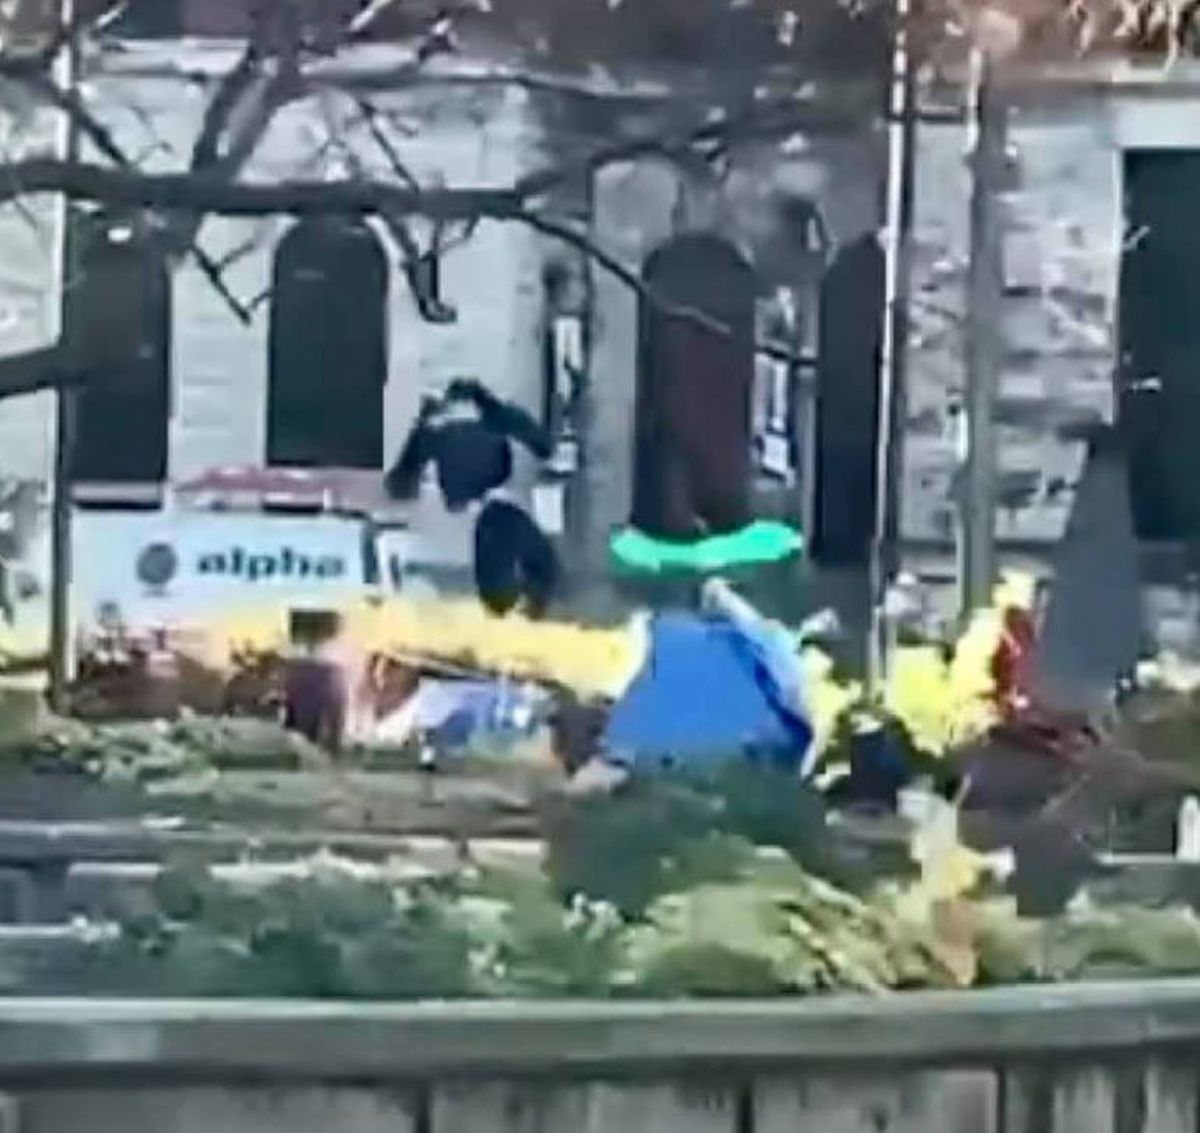 Hanged officer effigy taken down from Jefferson Square